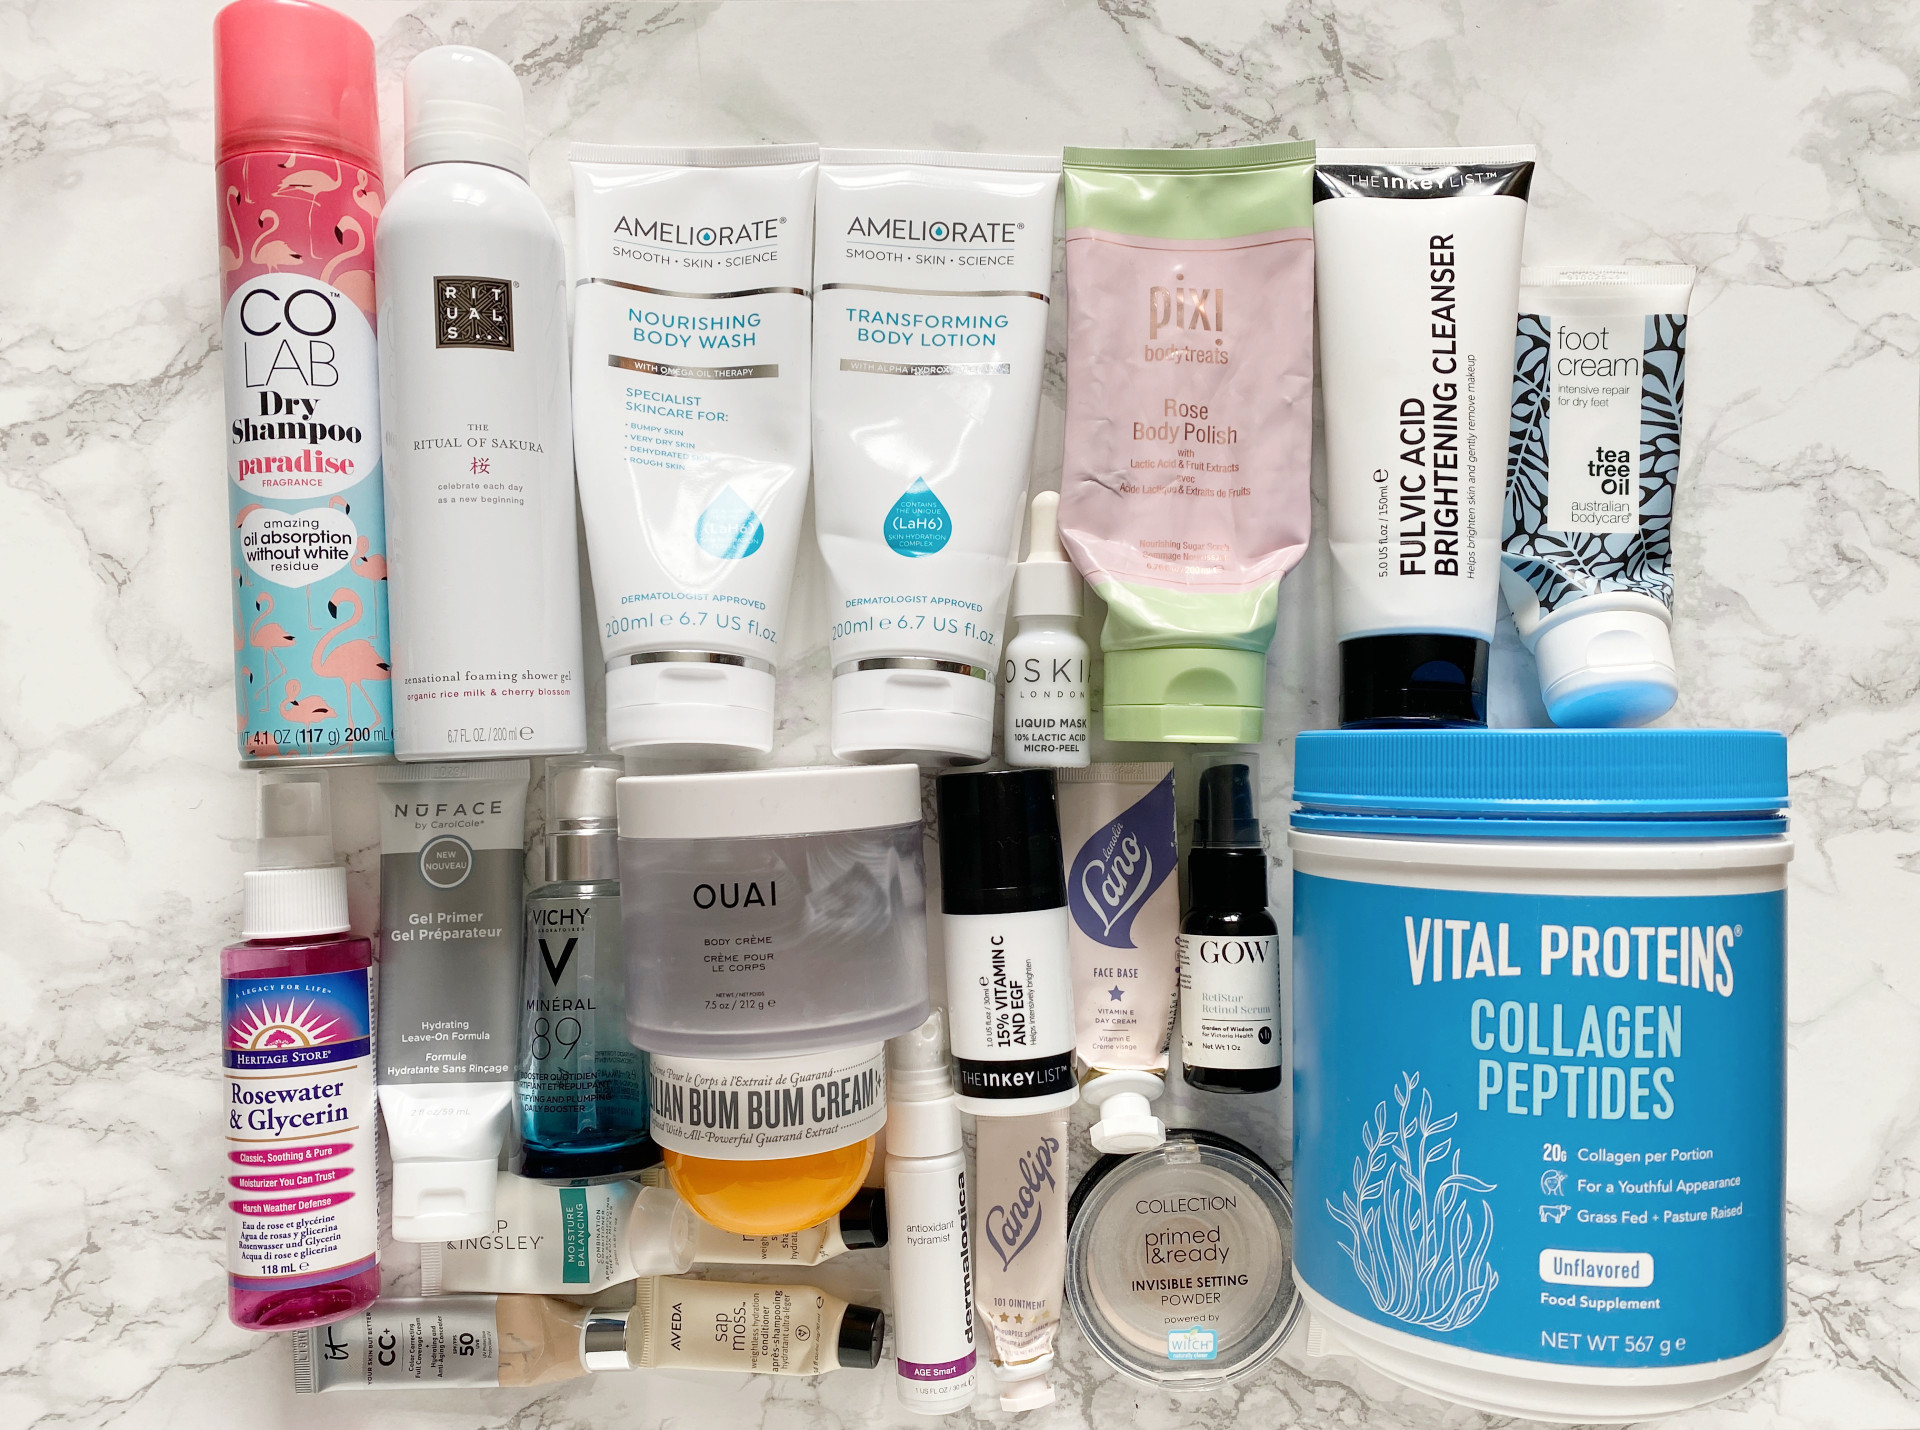 daniellesbeautyblog product empties and review